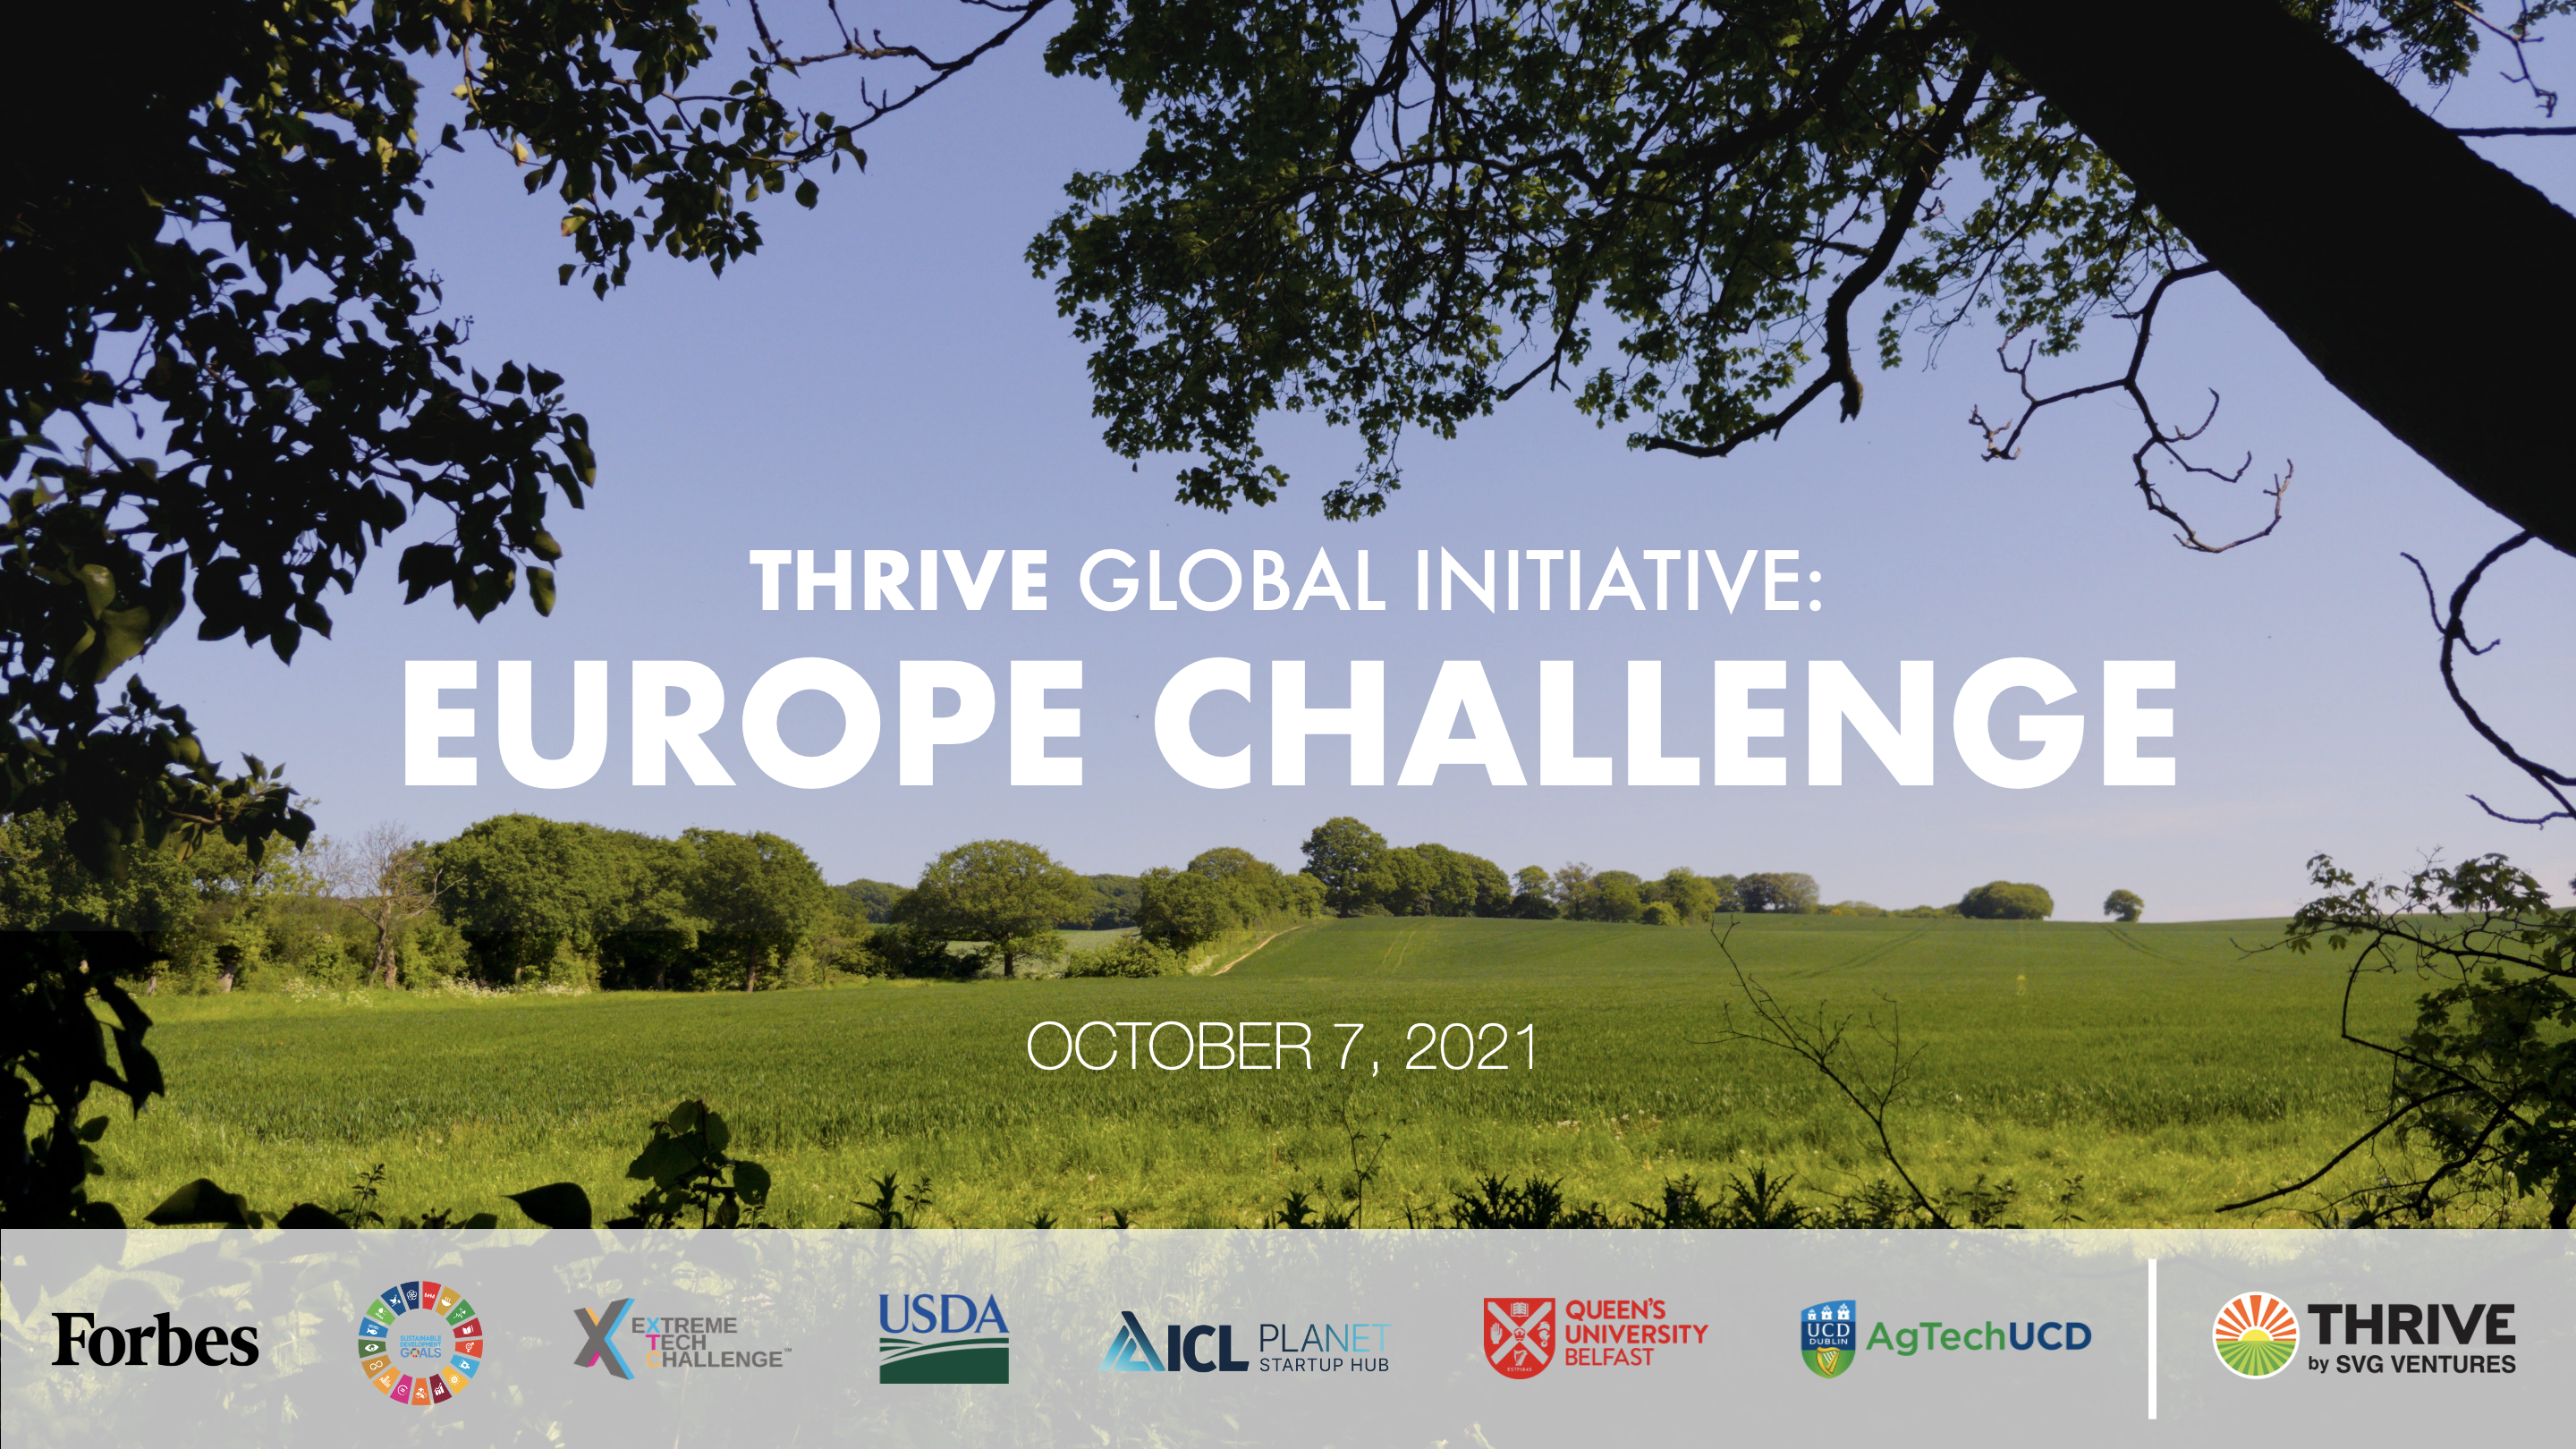 SVG Ventures | THRIVE announces partnership with ICL Planet Startup Hub on THRIVE Europe Challenge